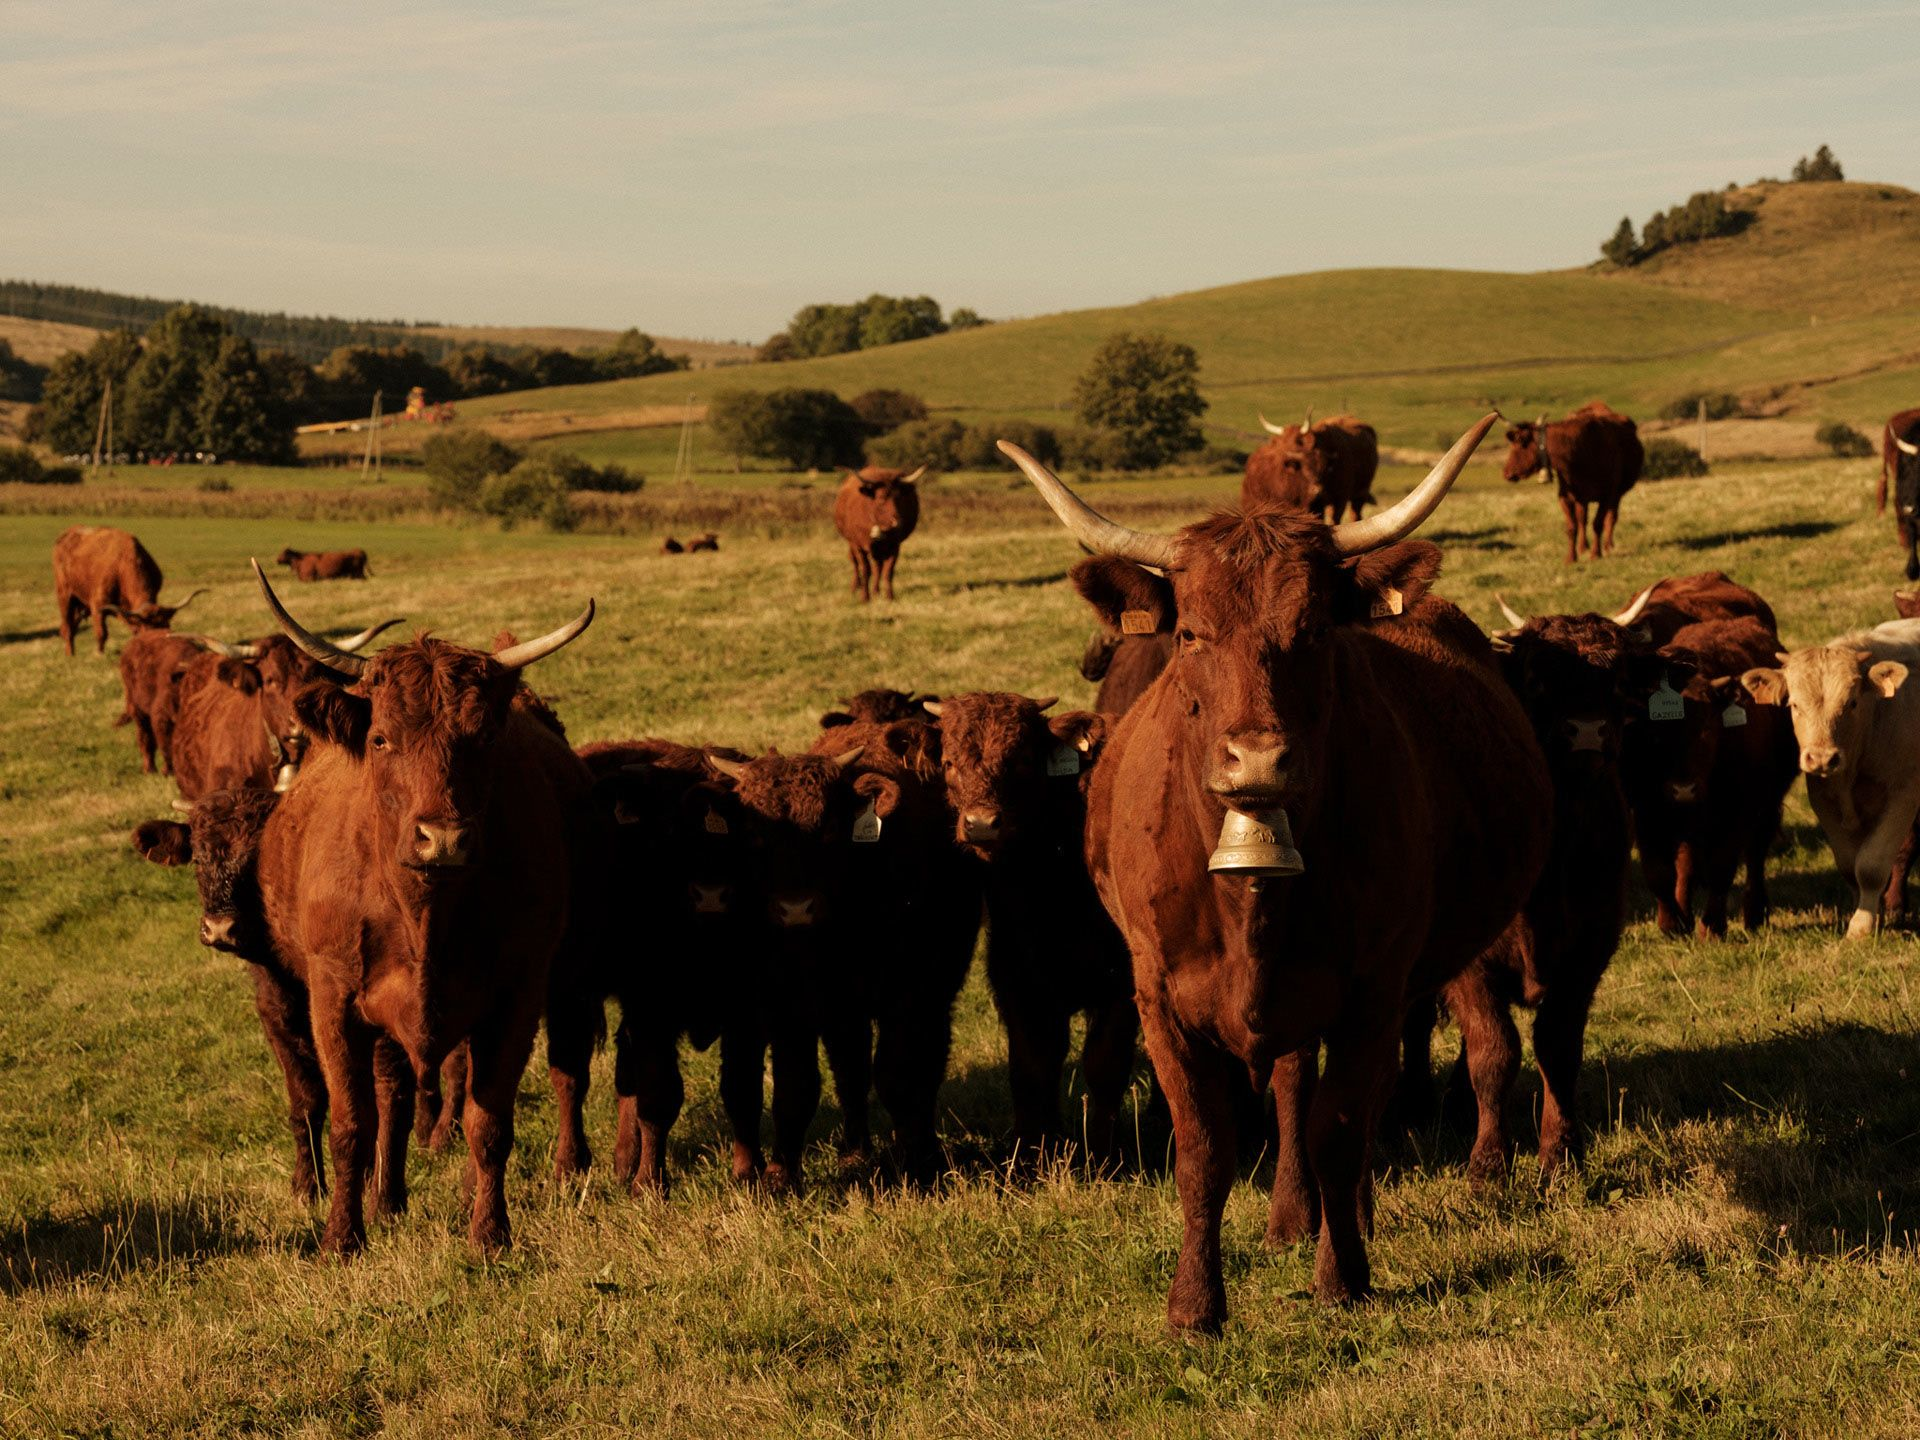 ginger long haired cows in field looking at camera by Alexi Hobbs in Auvergne for Reflets de France